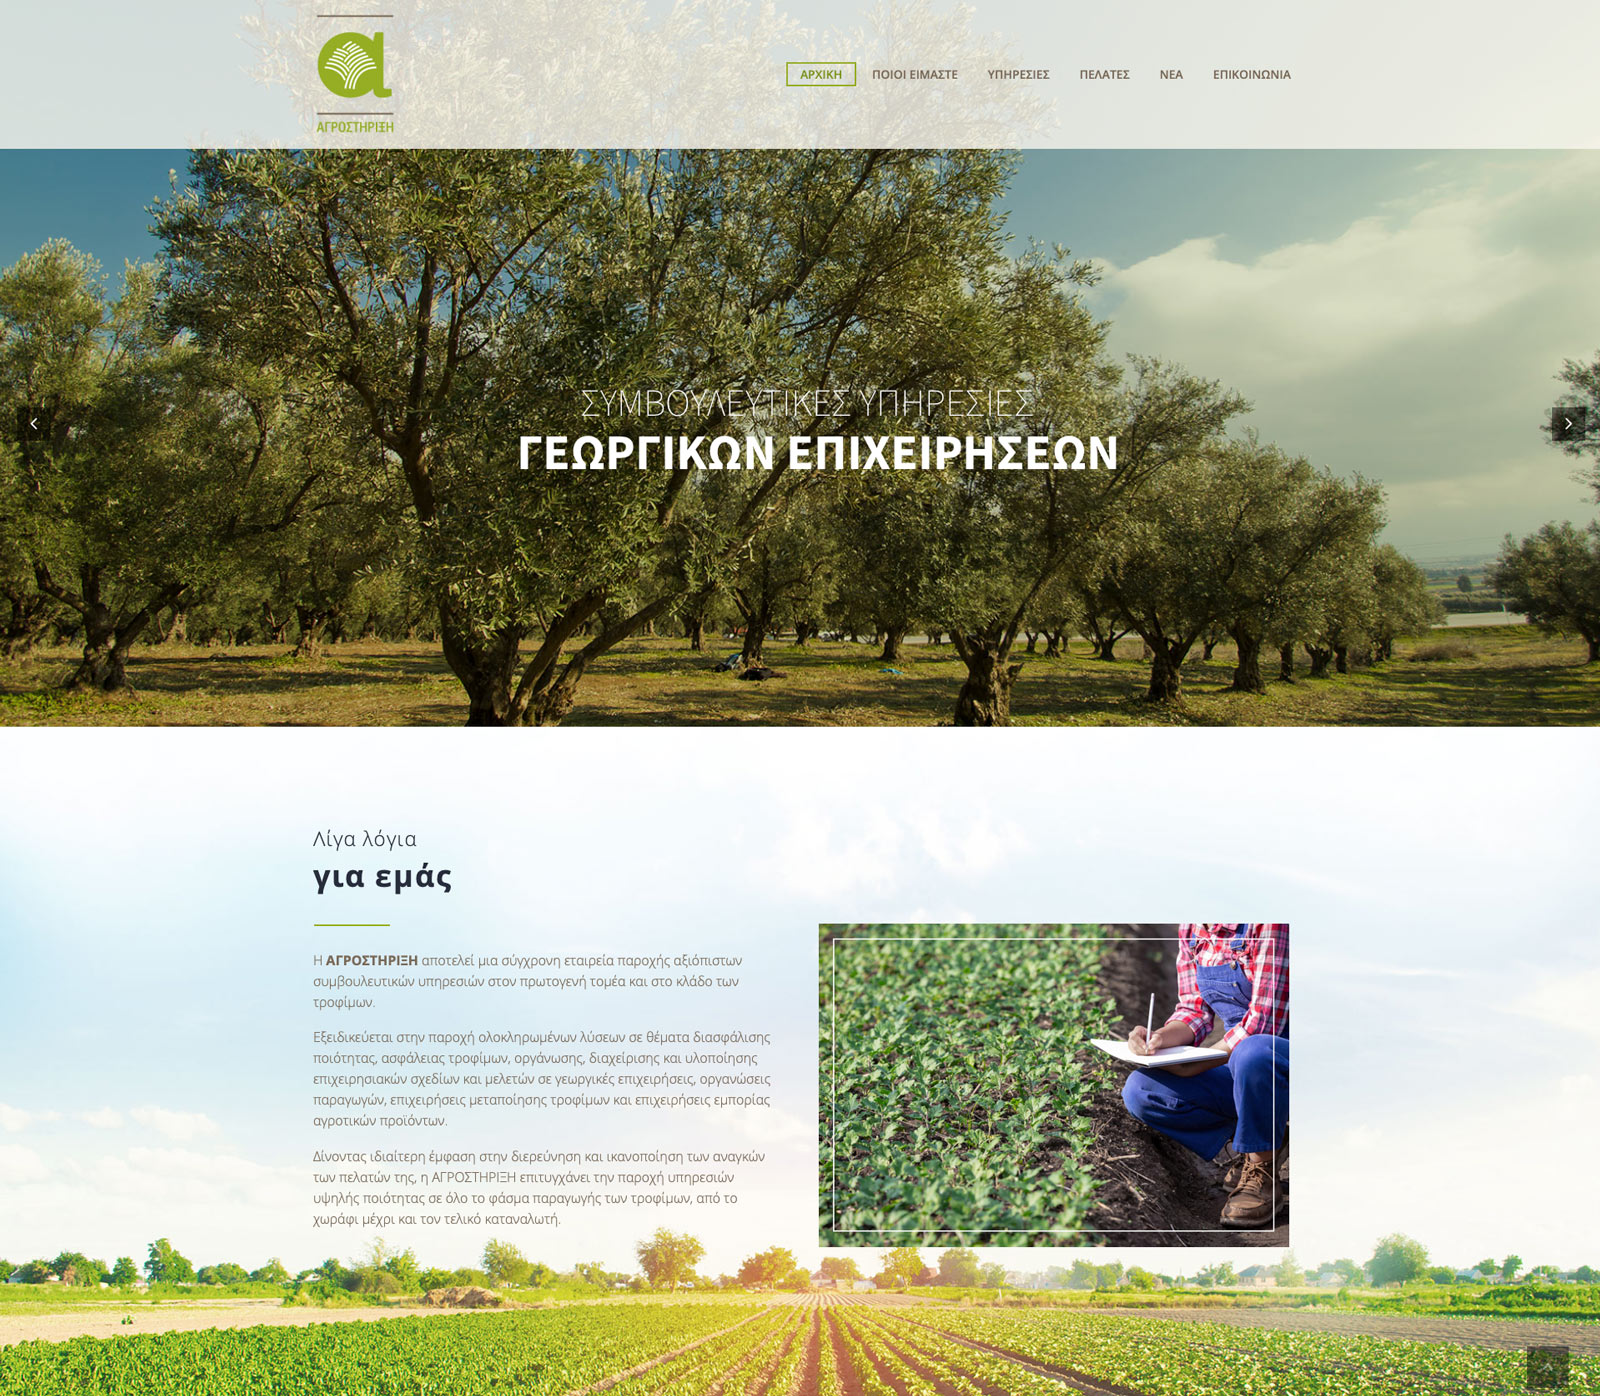 Agrostirixi website